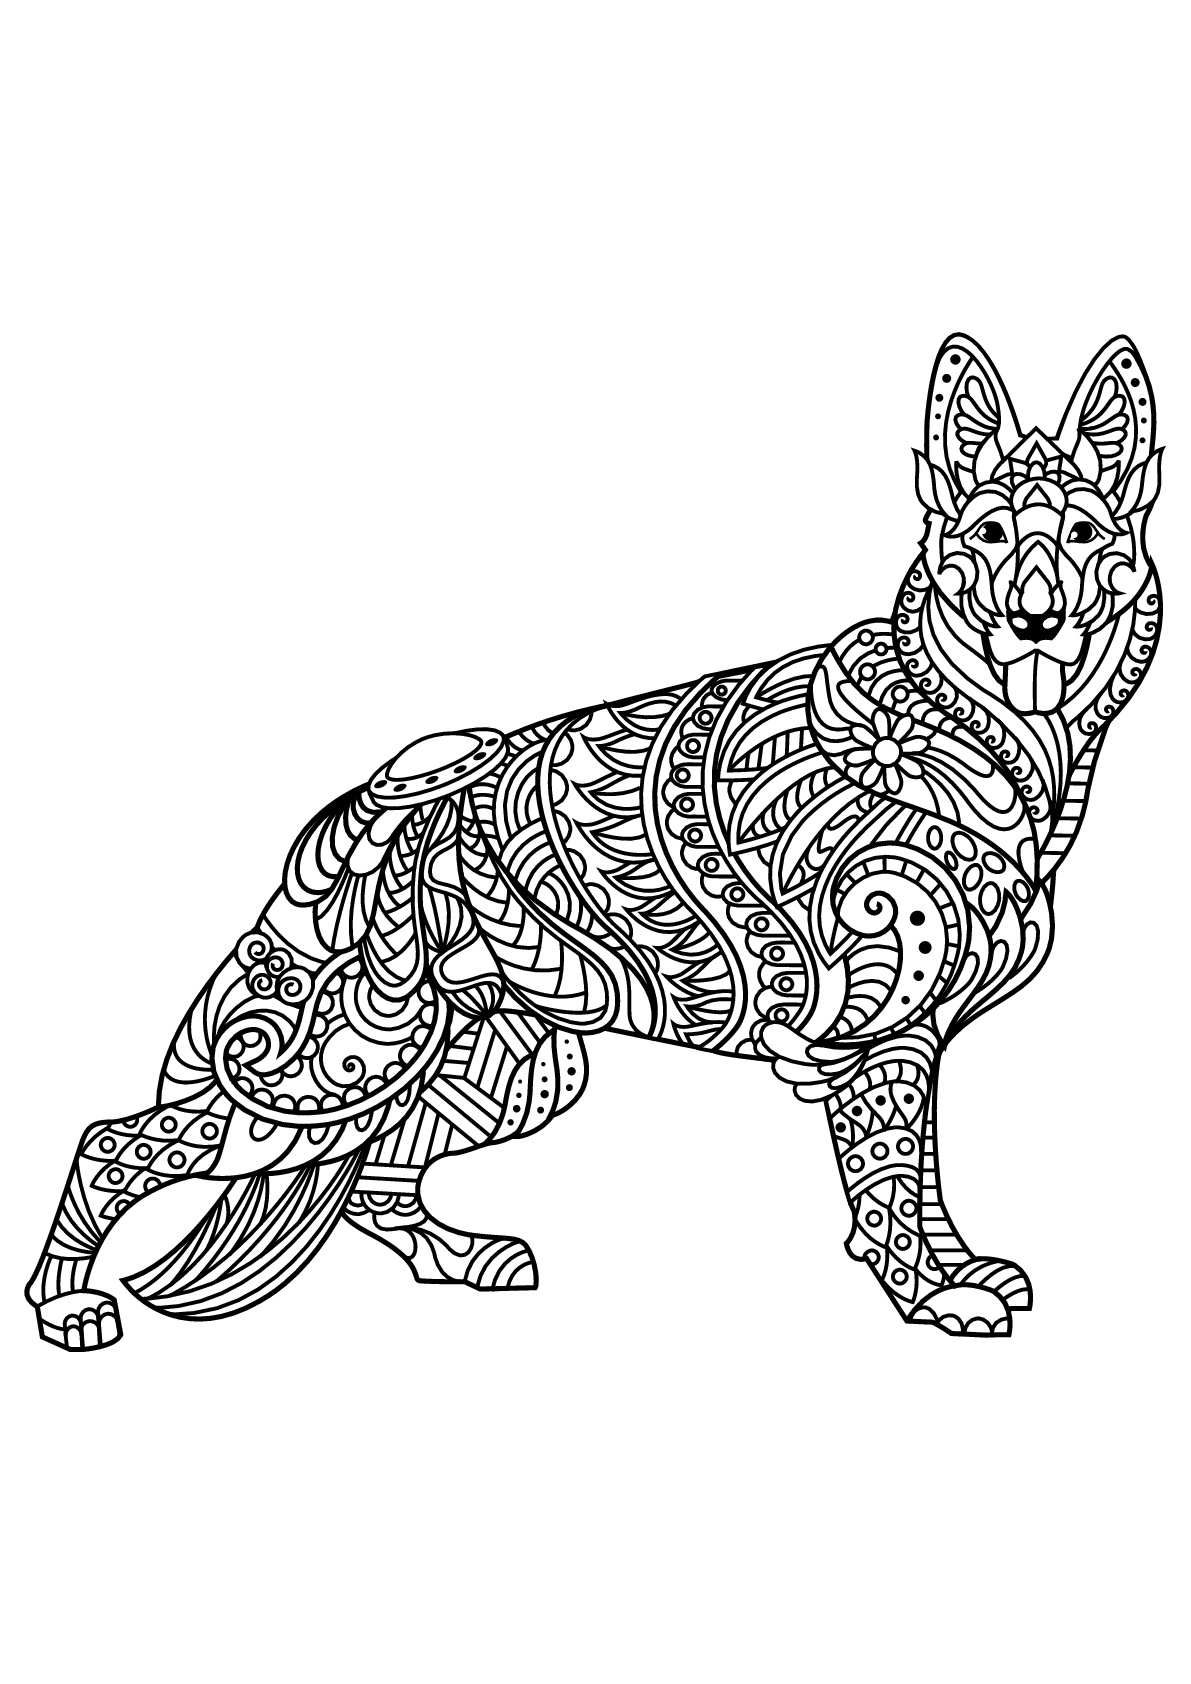 Free book dog german shepherd Dogs Adult Coloring Pages